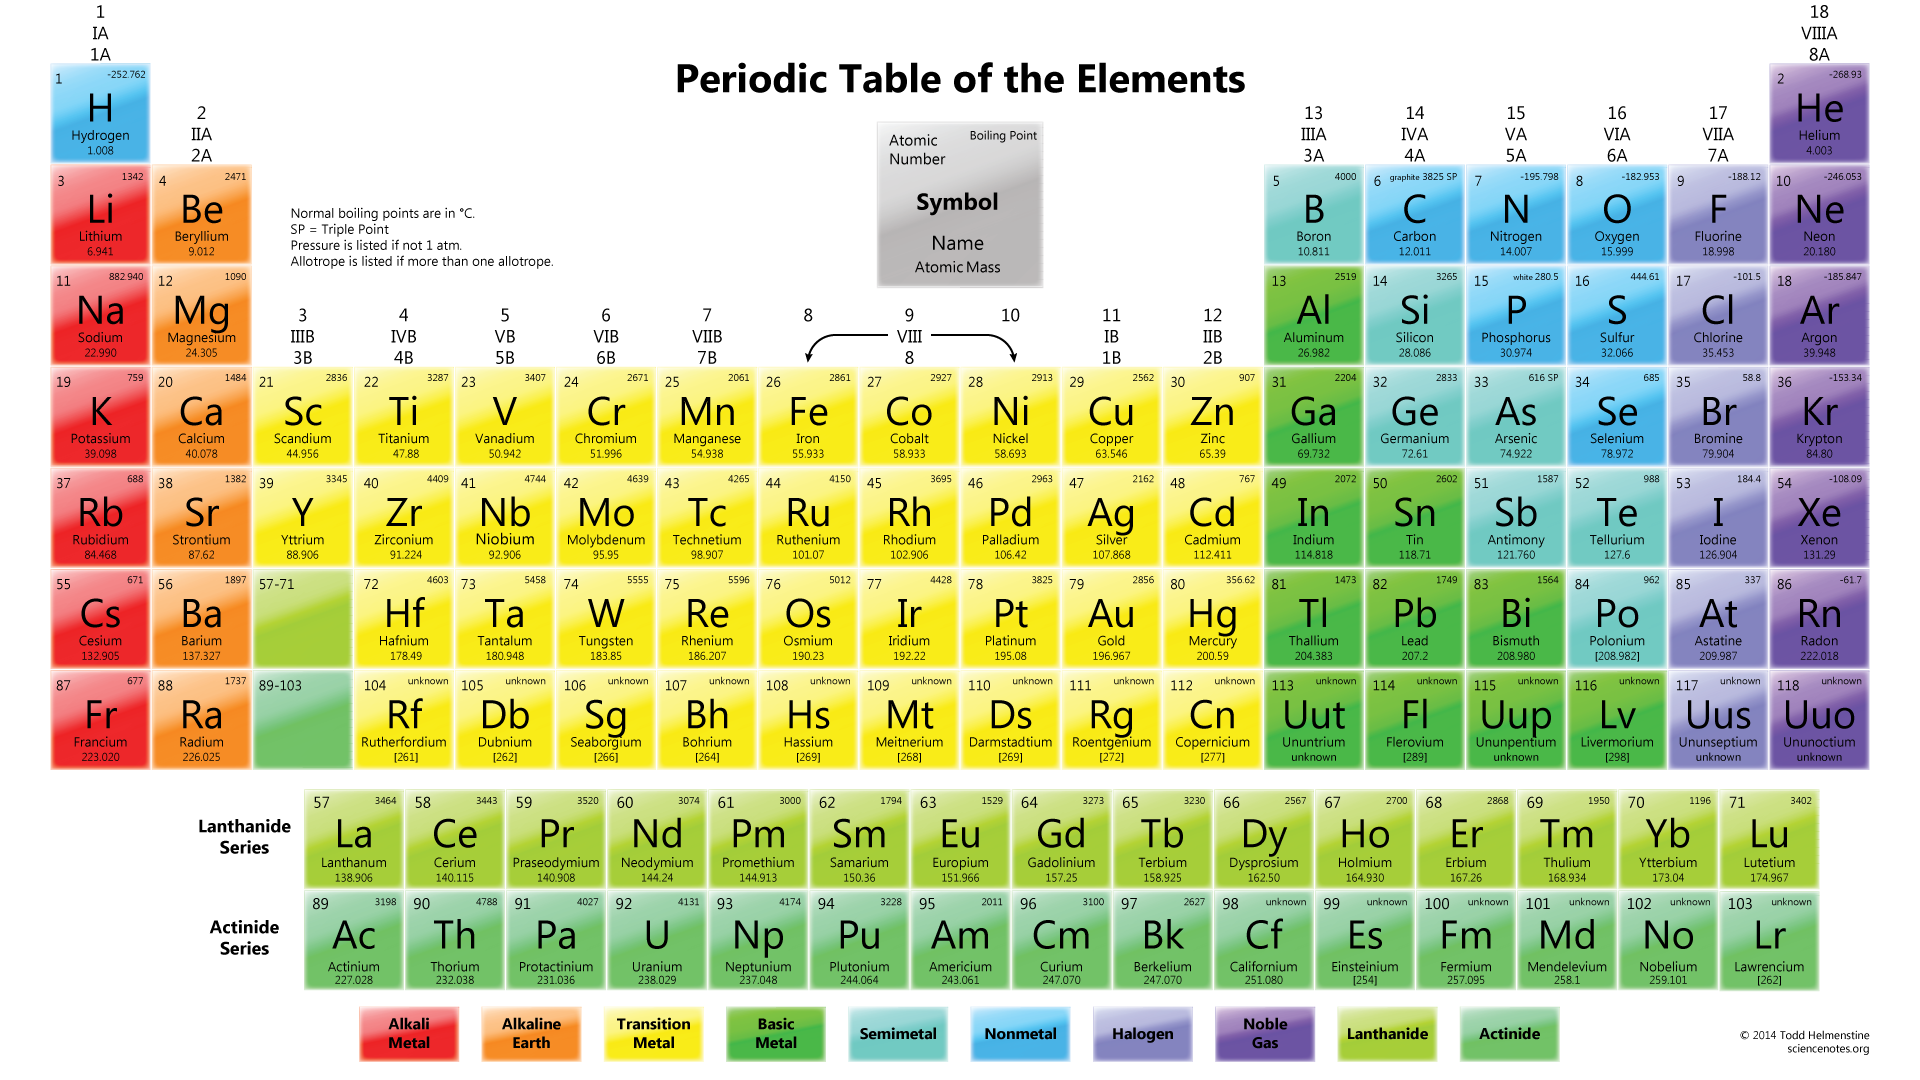 What is the Periodic Table of the Elements